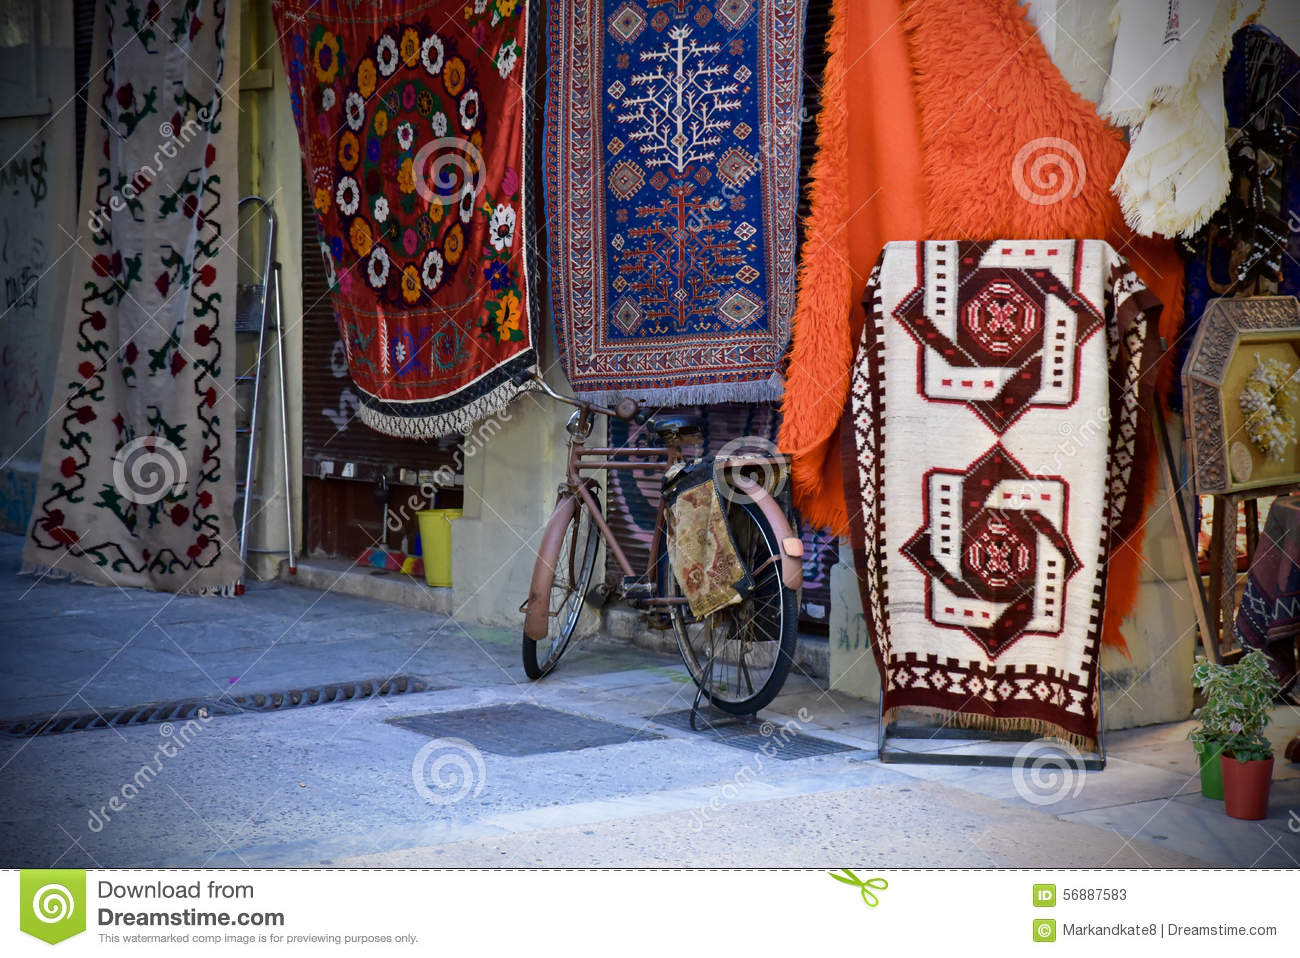 Bicycle parked in front of a rug store in Athens, Greece